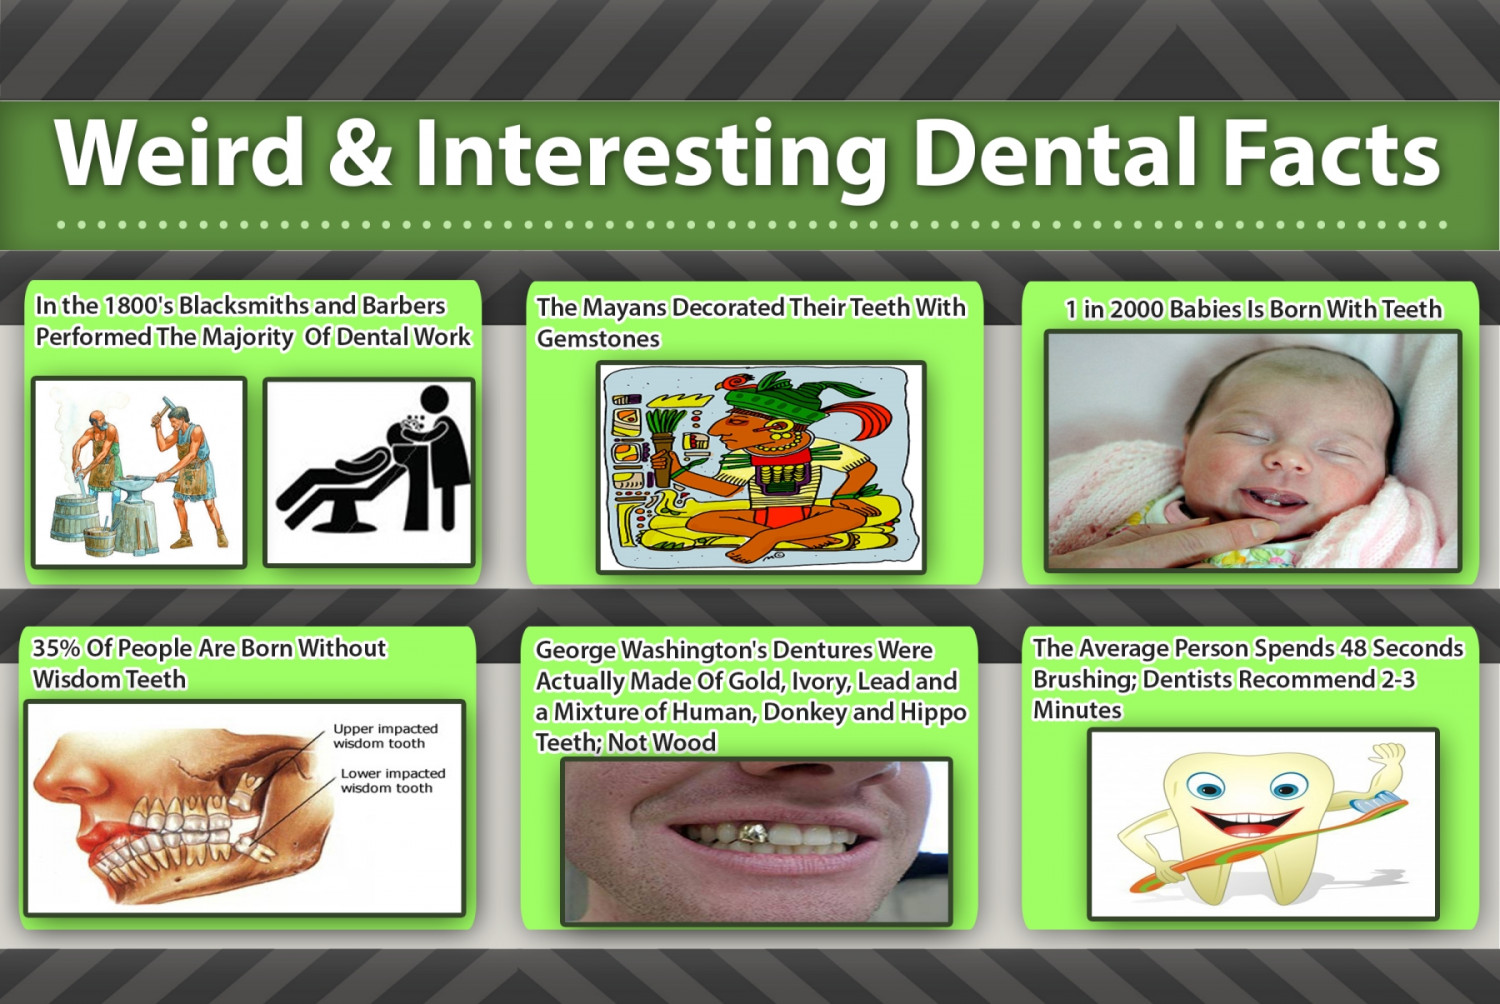 Weird & Interesting Dental Facts | Visual.ly